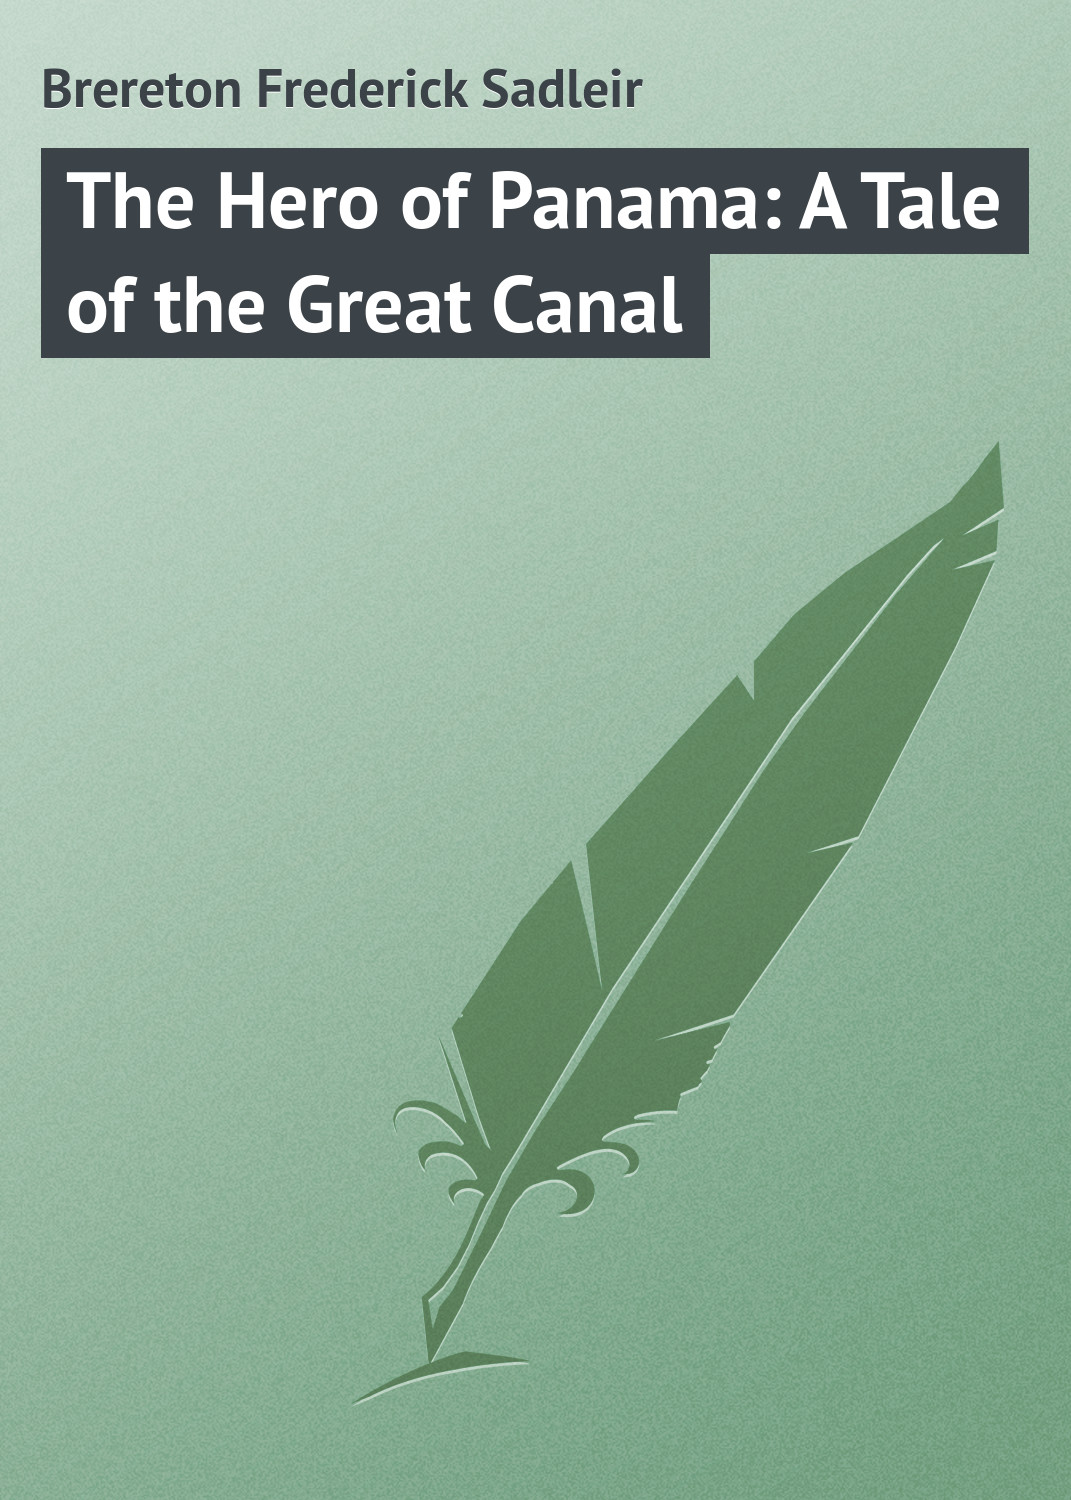 Brereton Frederick Sadleir The Hero of Panama: A Tale of the Great Canal